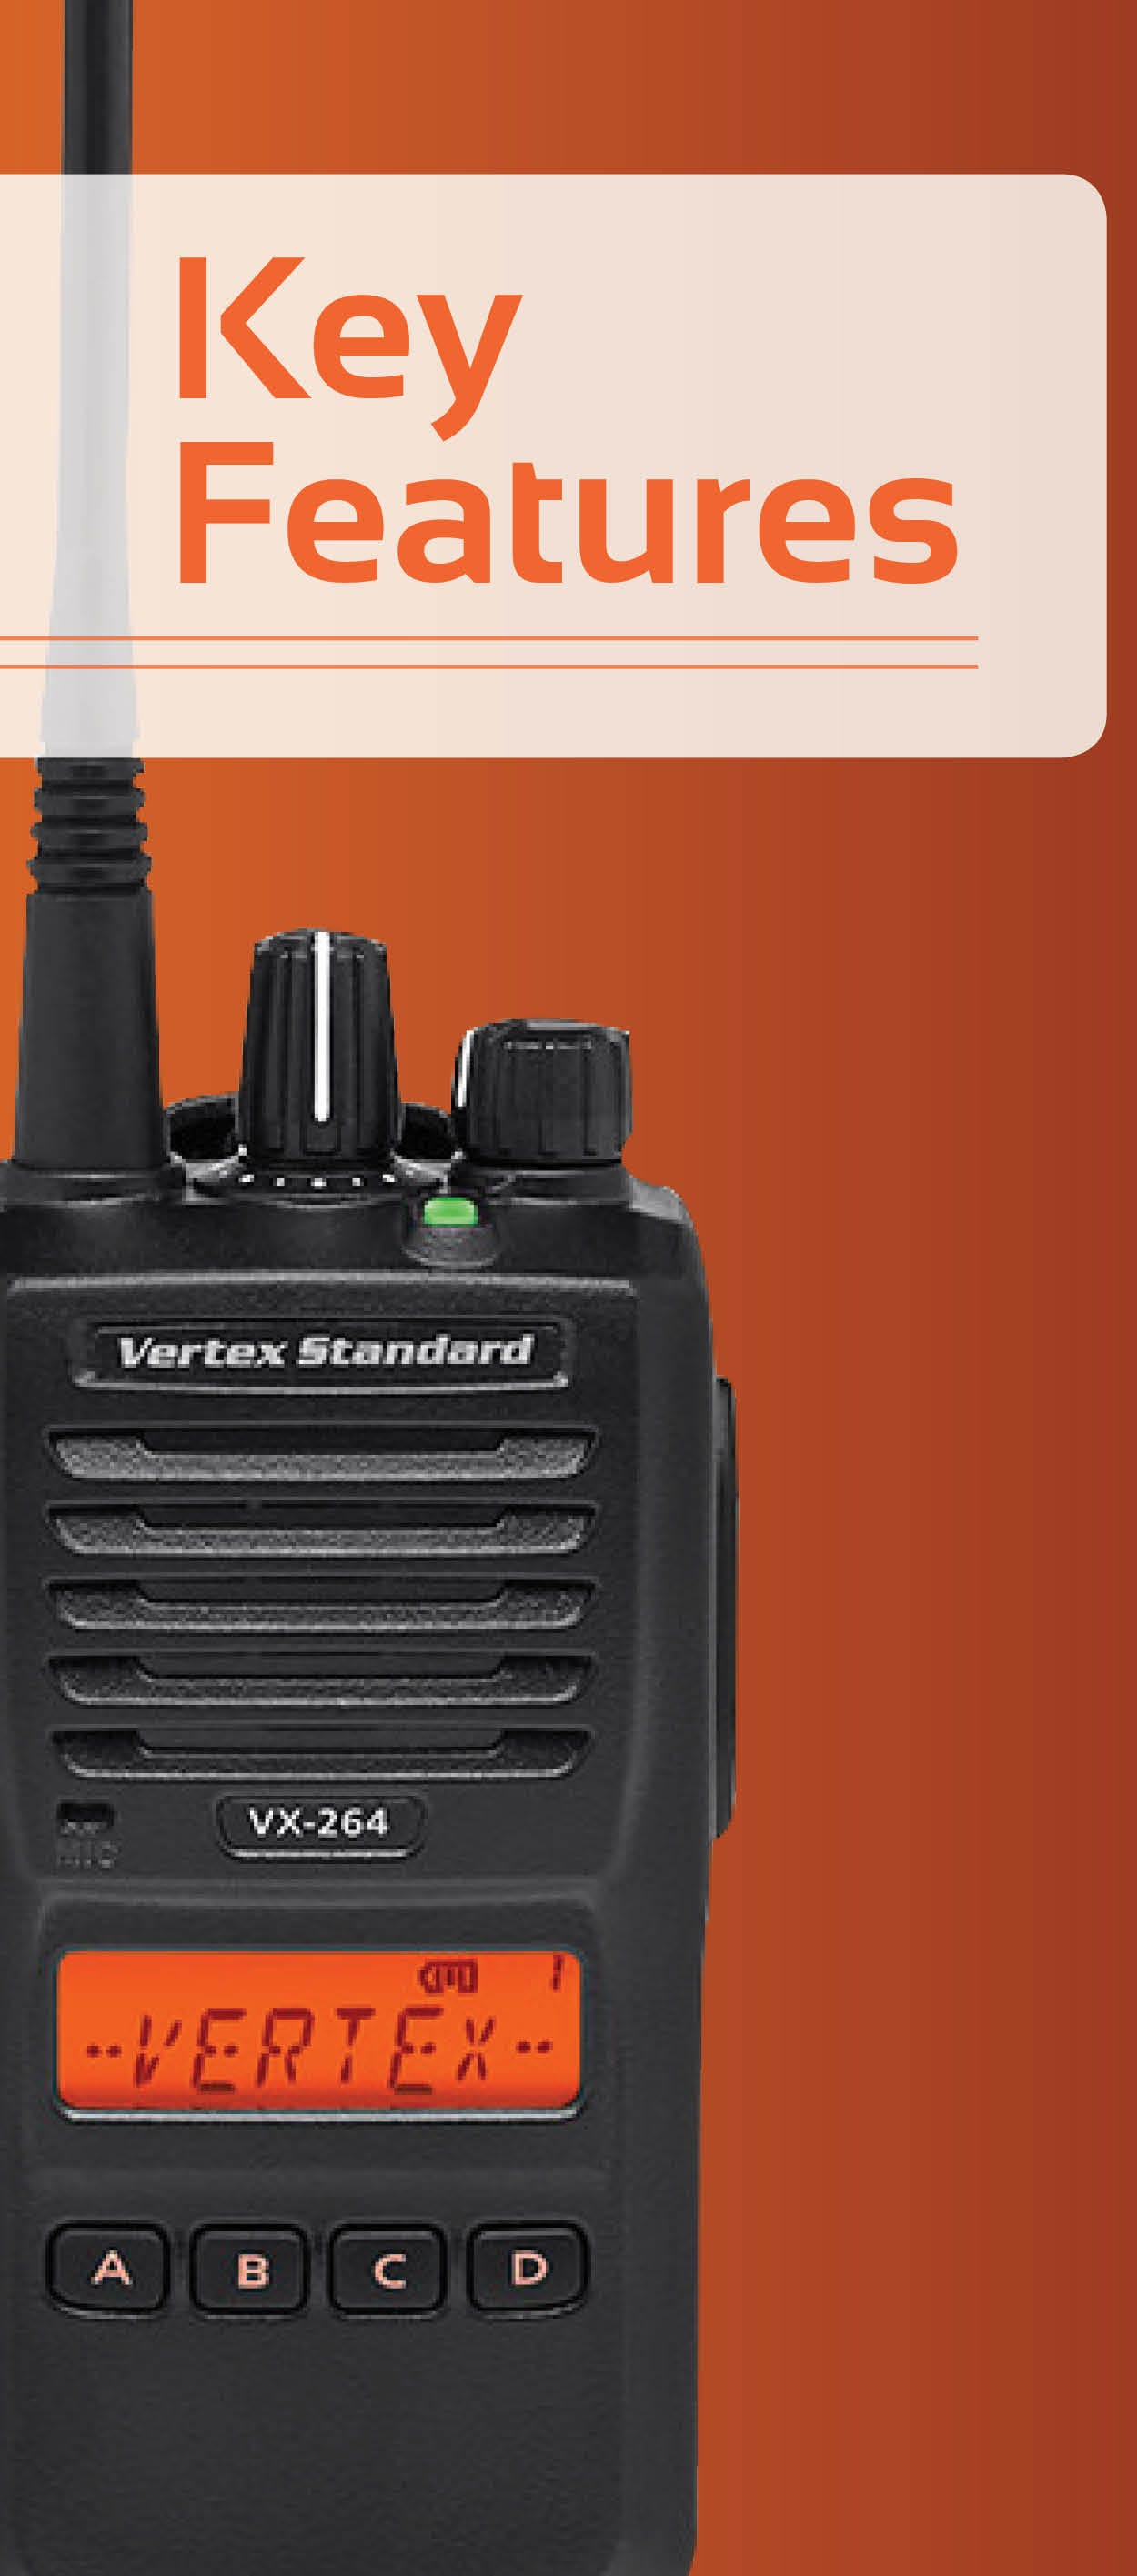 Vertex VX-264 Features